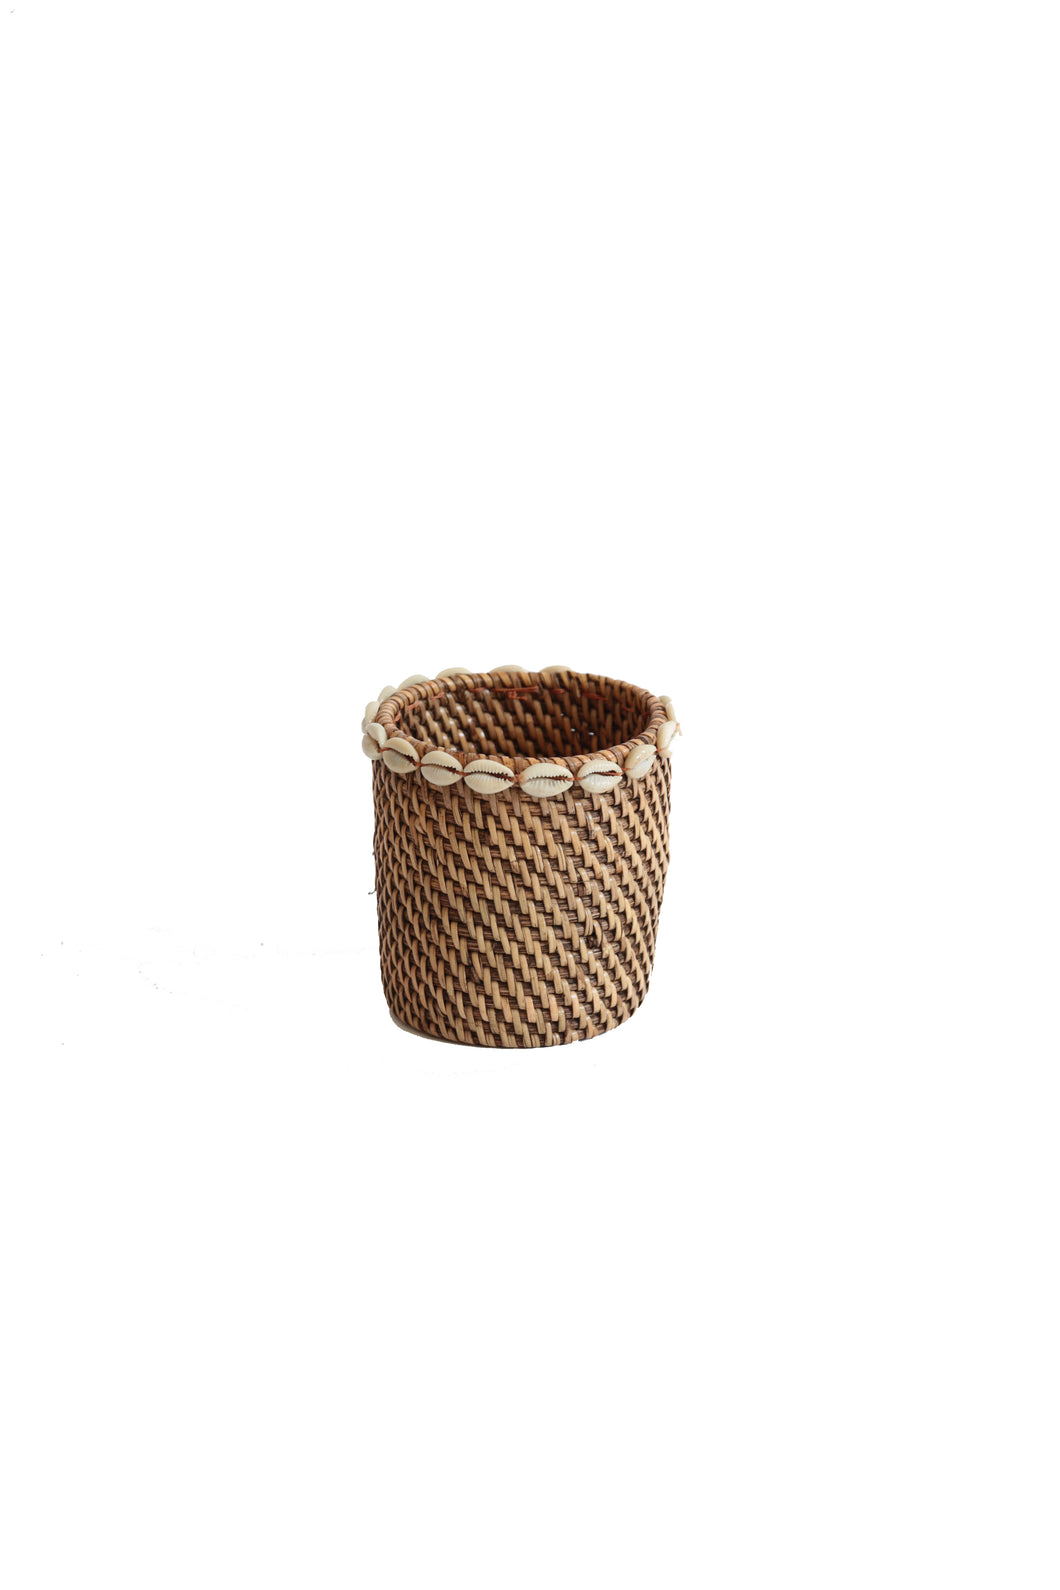 SMALL RATTAN CUP WITH SHELL